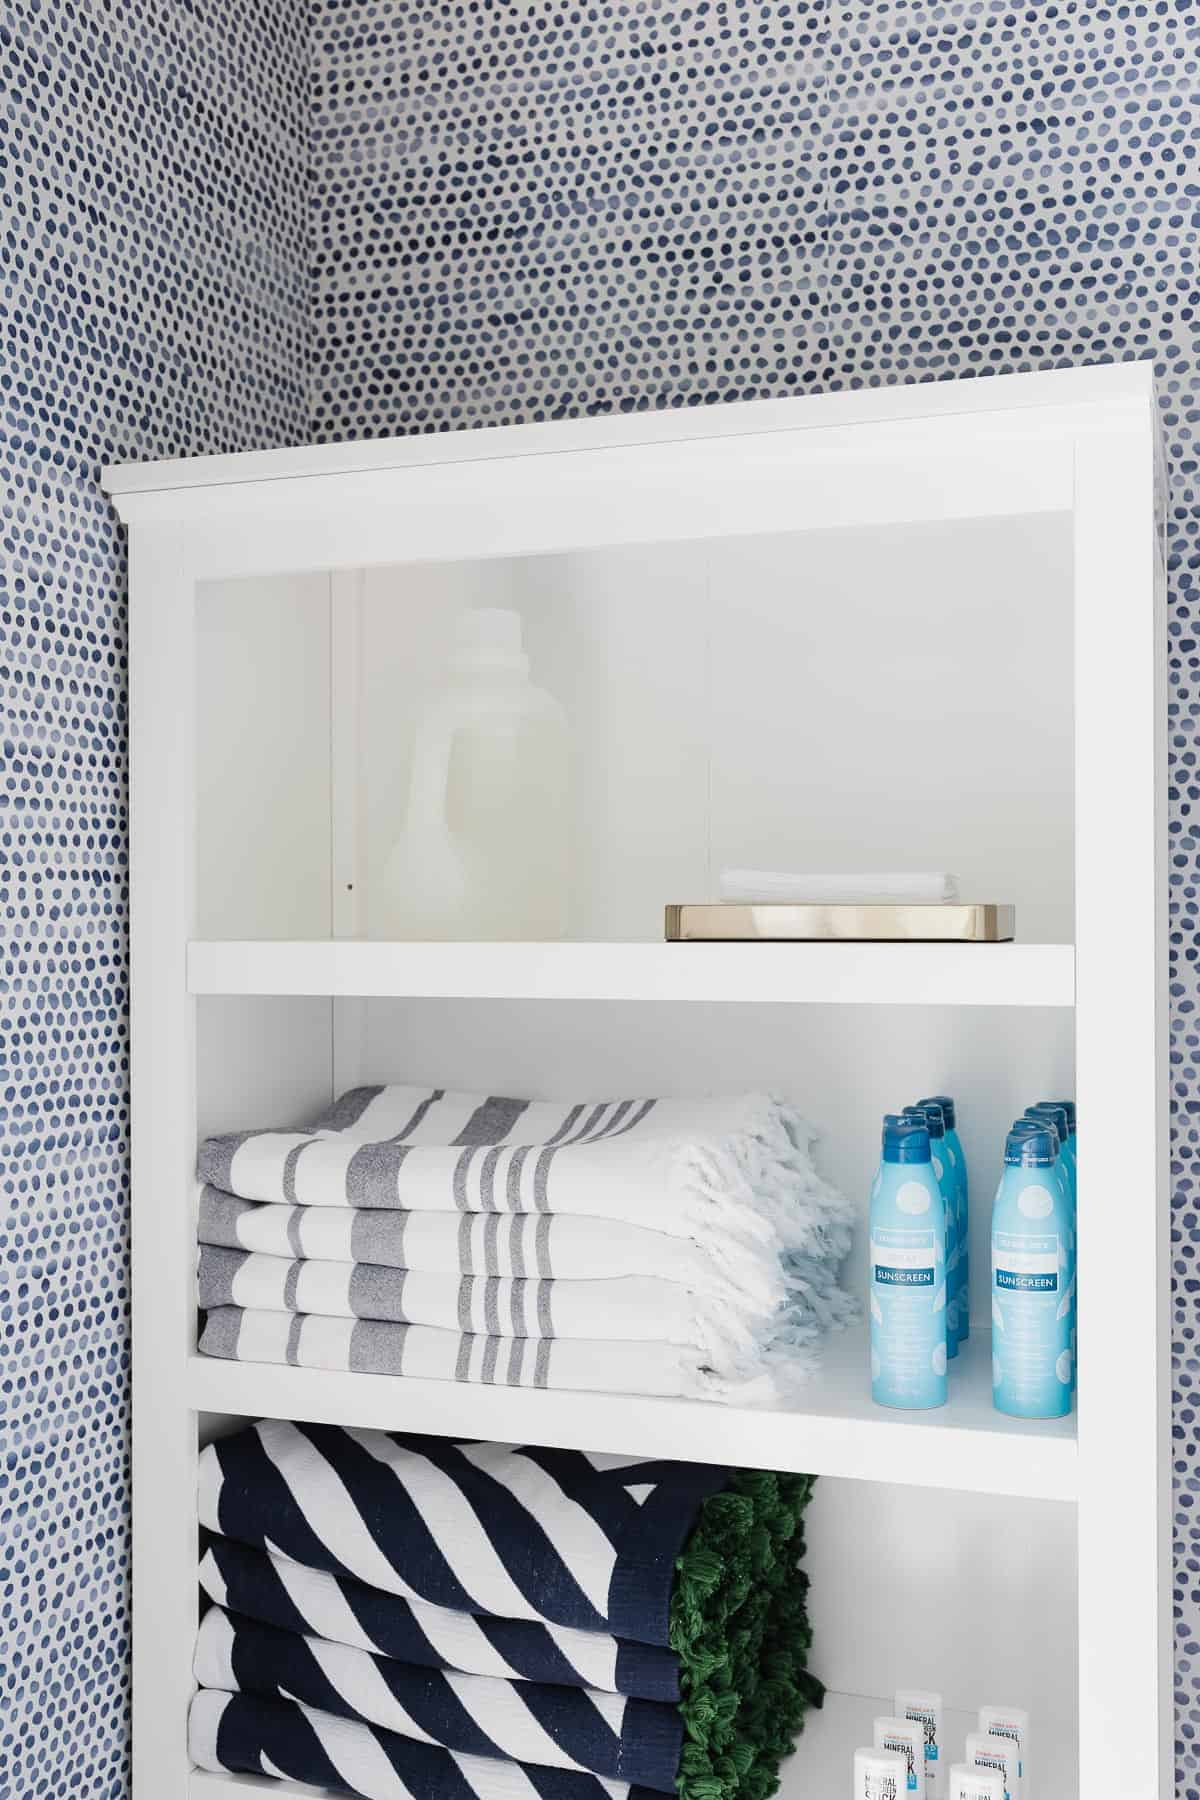 bookcase inside of closet boasting laundry detergent dryer sheets and towels